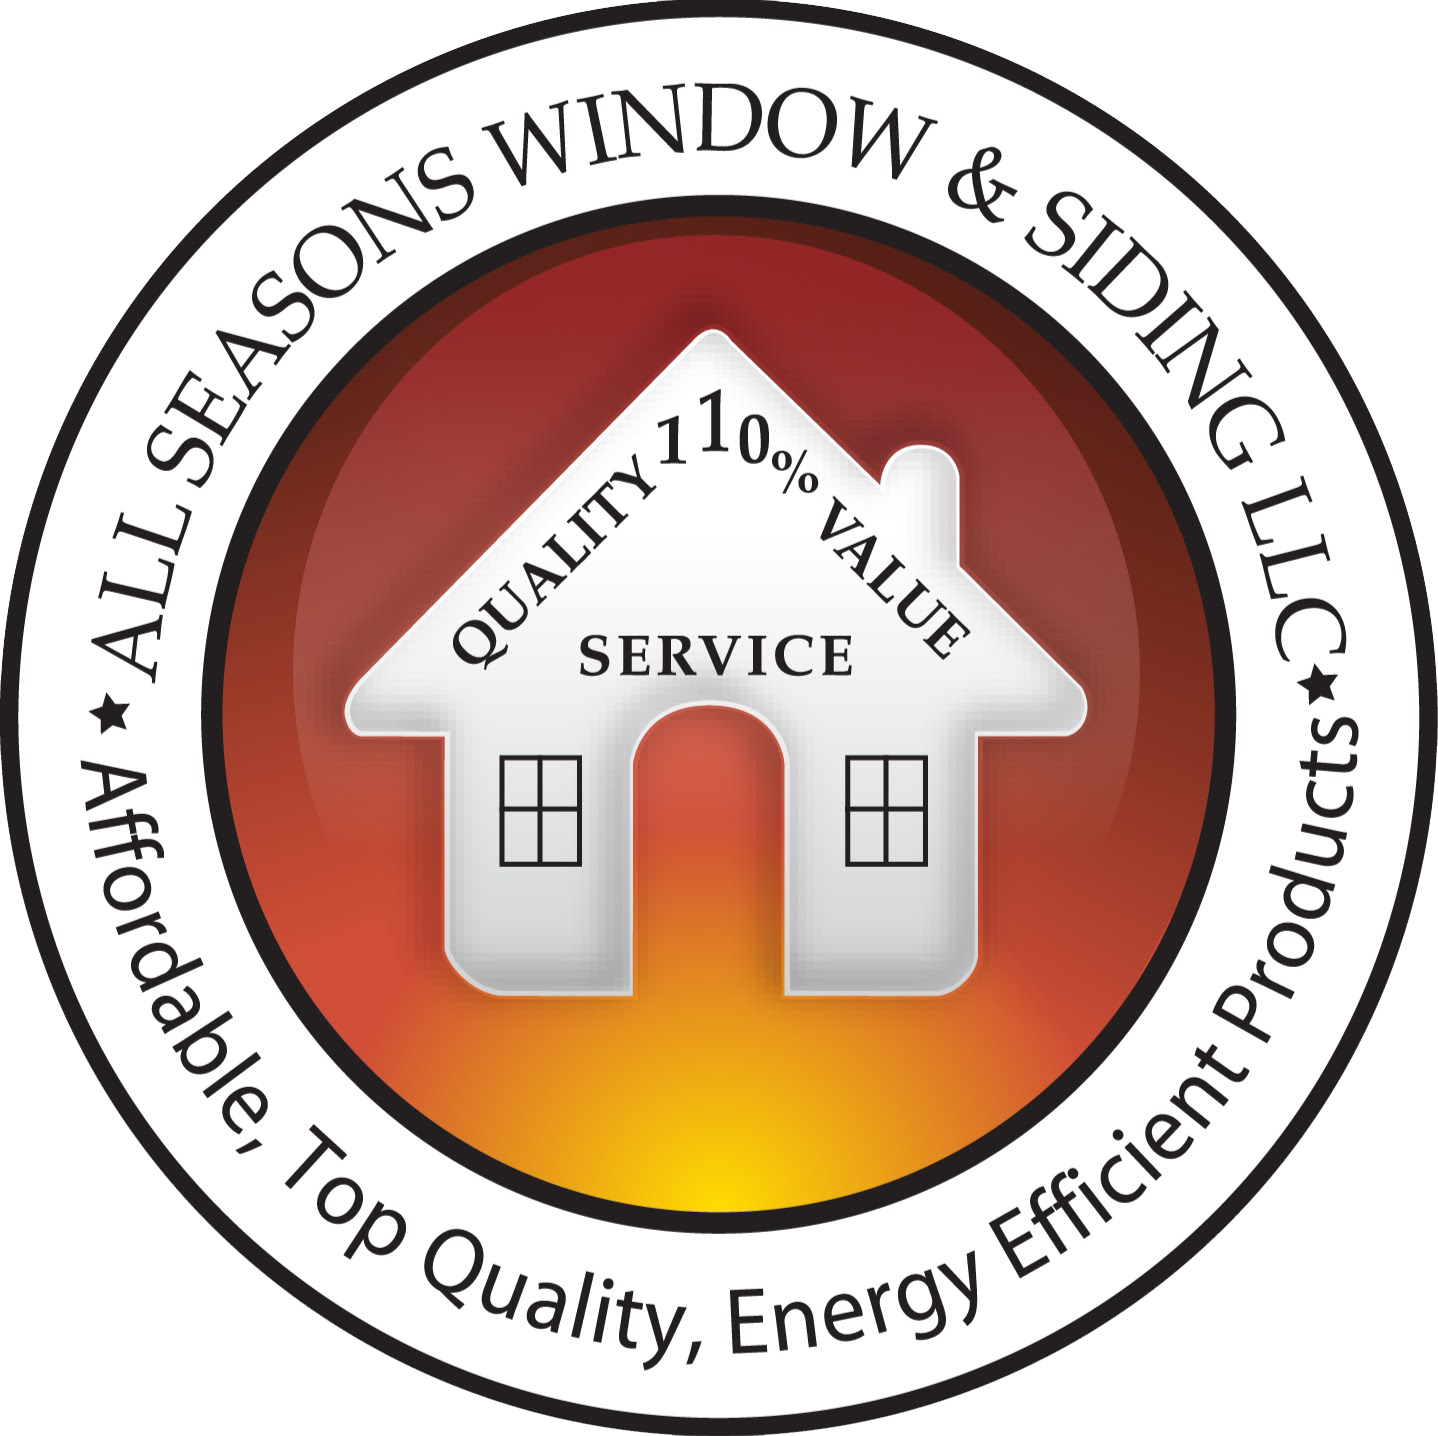 All Seasons Window & Siding